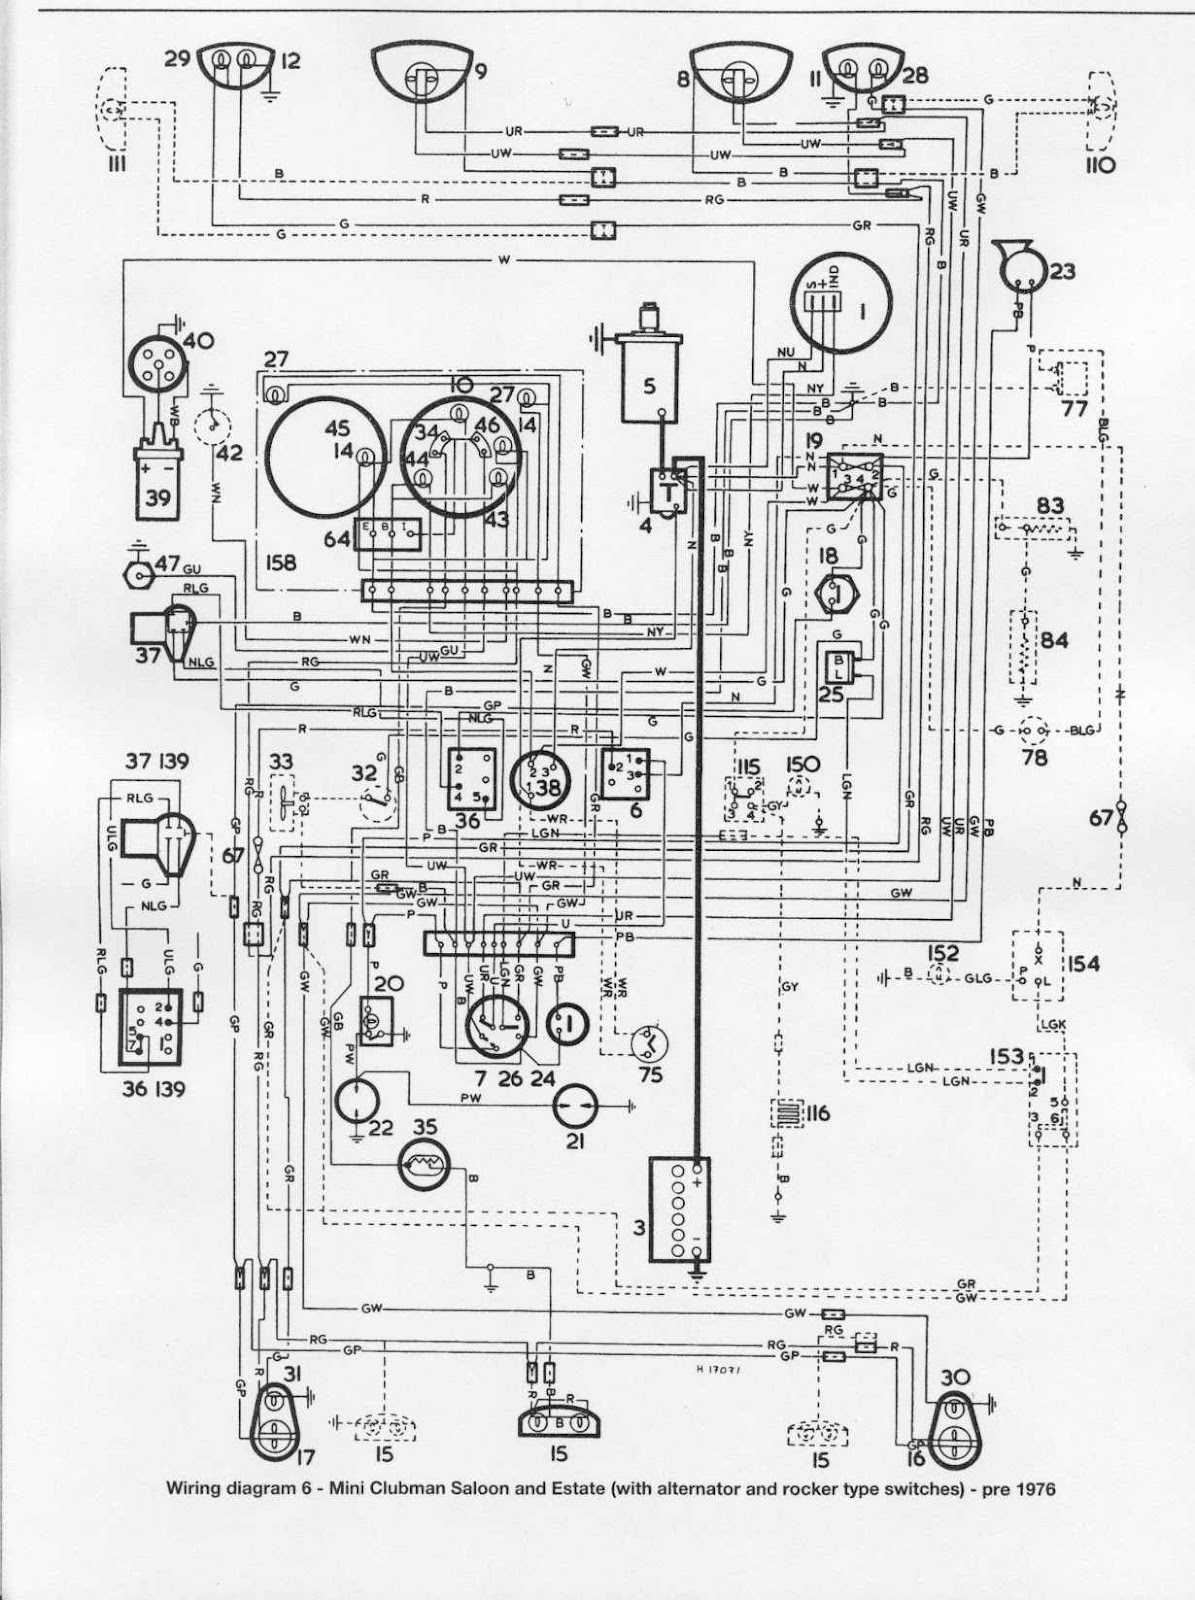 mini cooper ecu wiring diagram mini cooper 2003 wiring diagram. mini. wiring diagram images